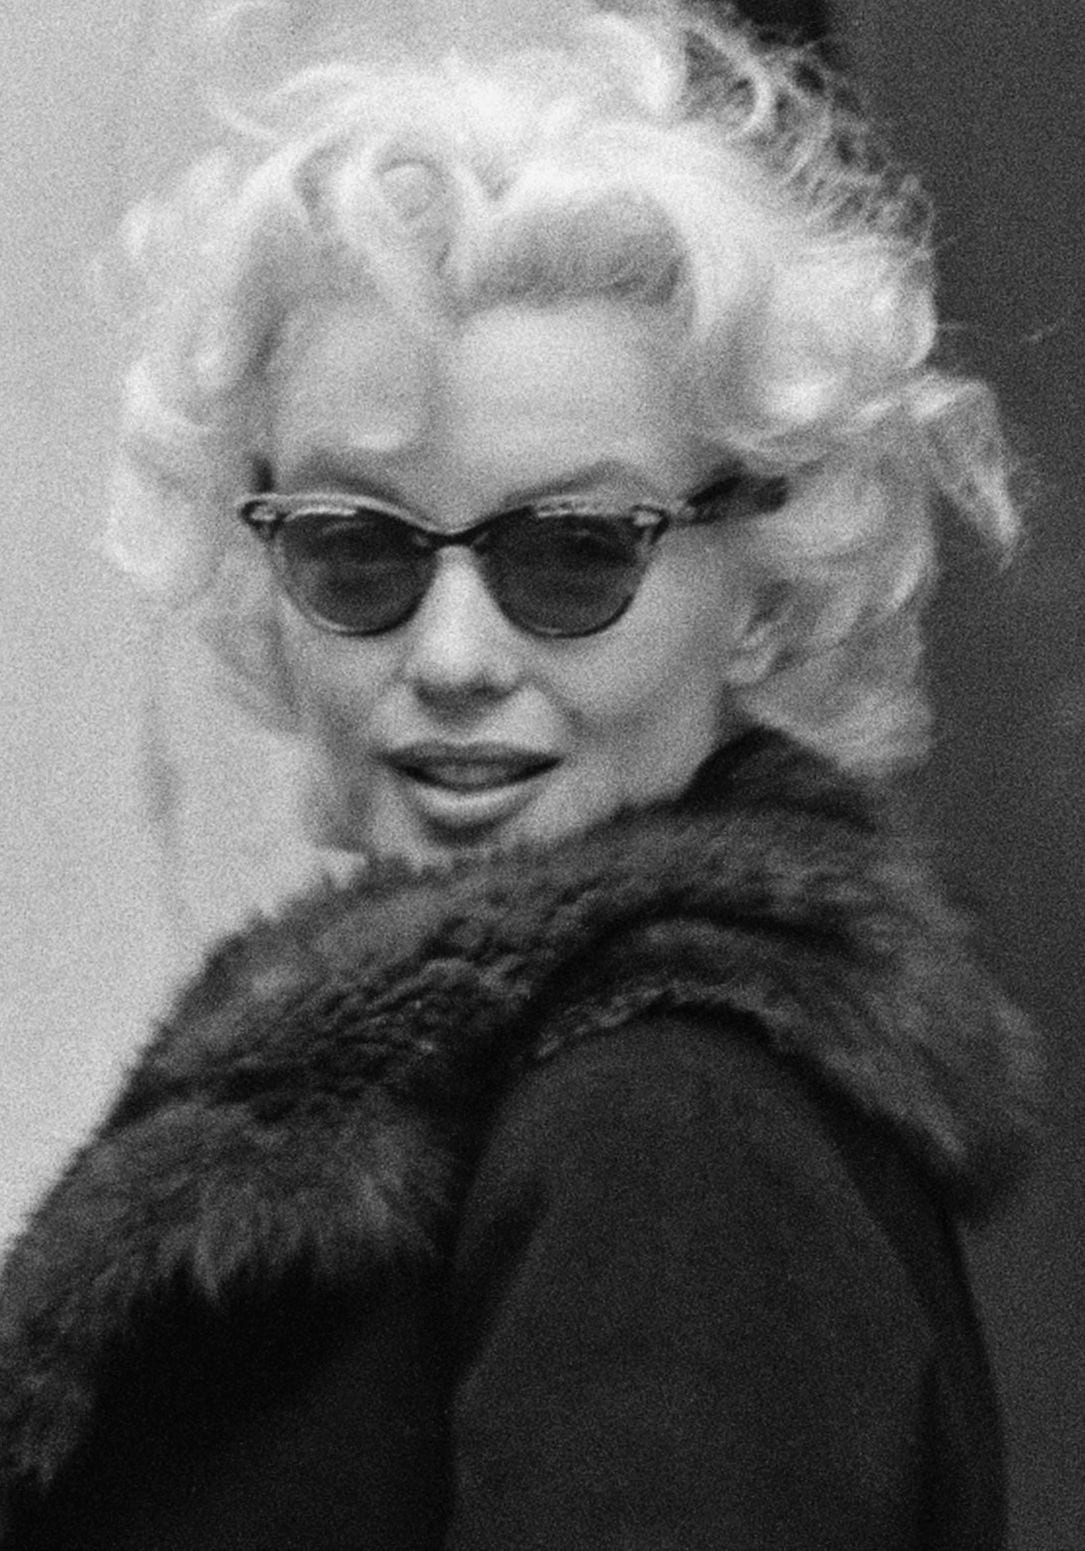 marilyn monroe as a cultural icon Marilyn monroe (1926 - 1962) has become an american cultural icon, celebrated by many all over the world the actress was a prodigy of lee strasberg and one of the most popular sex symbols of the 1950s.